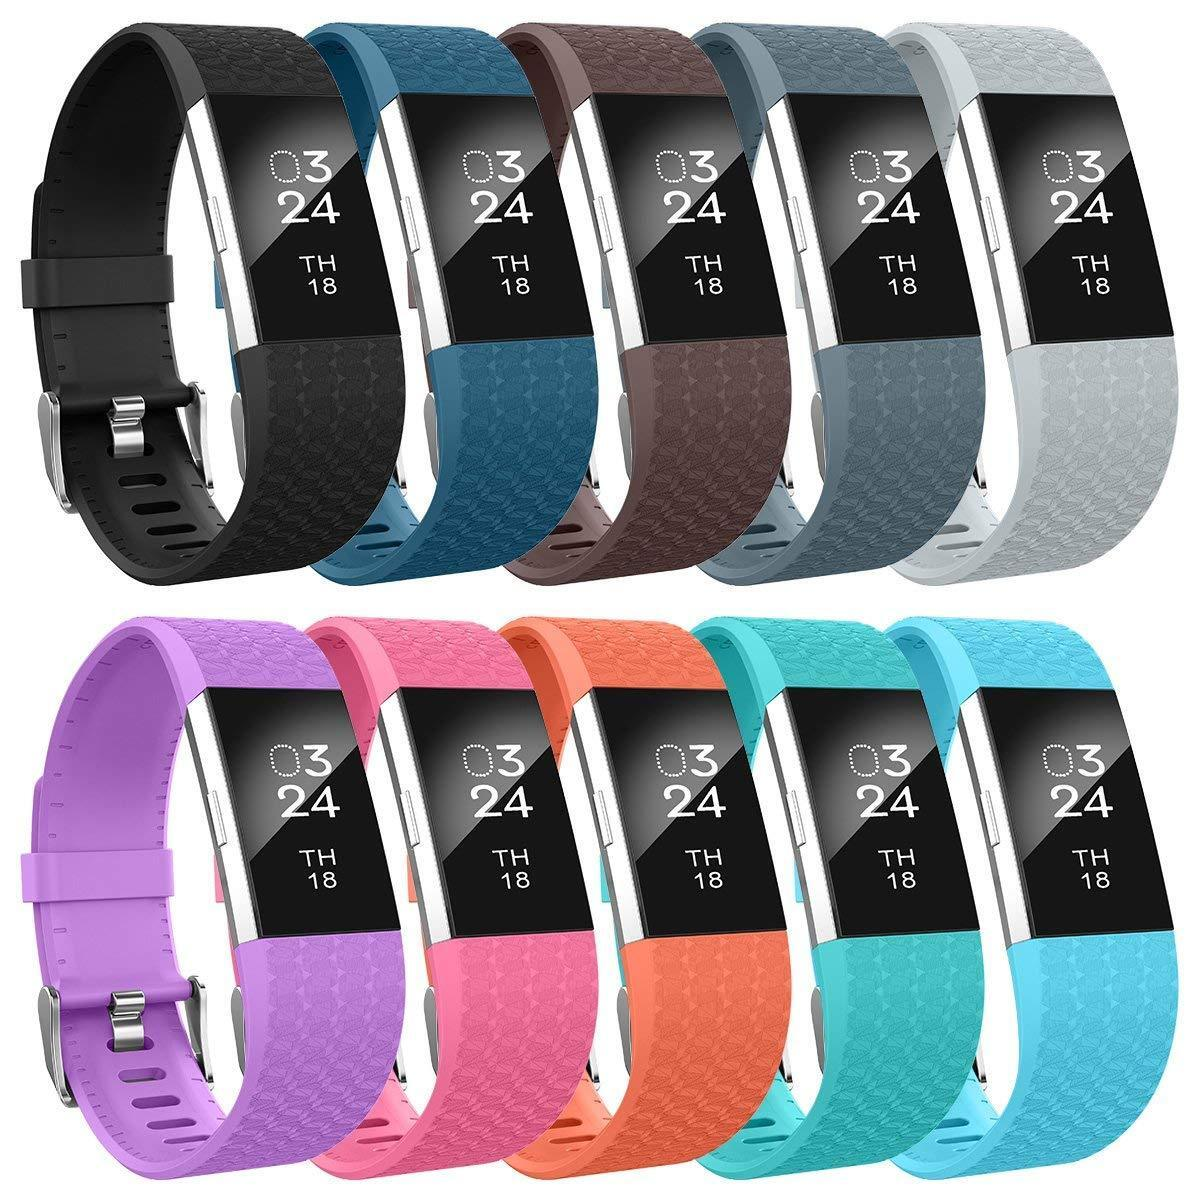 For Fitbit Charge 2 Band Silicone Fitness Replacement Access